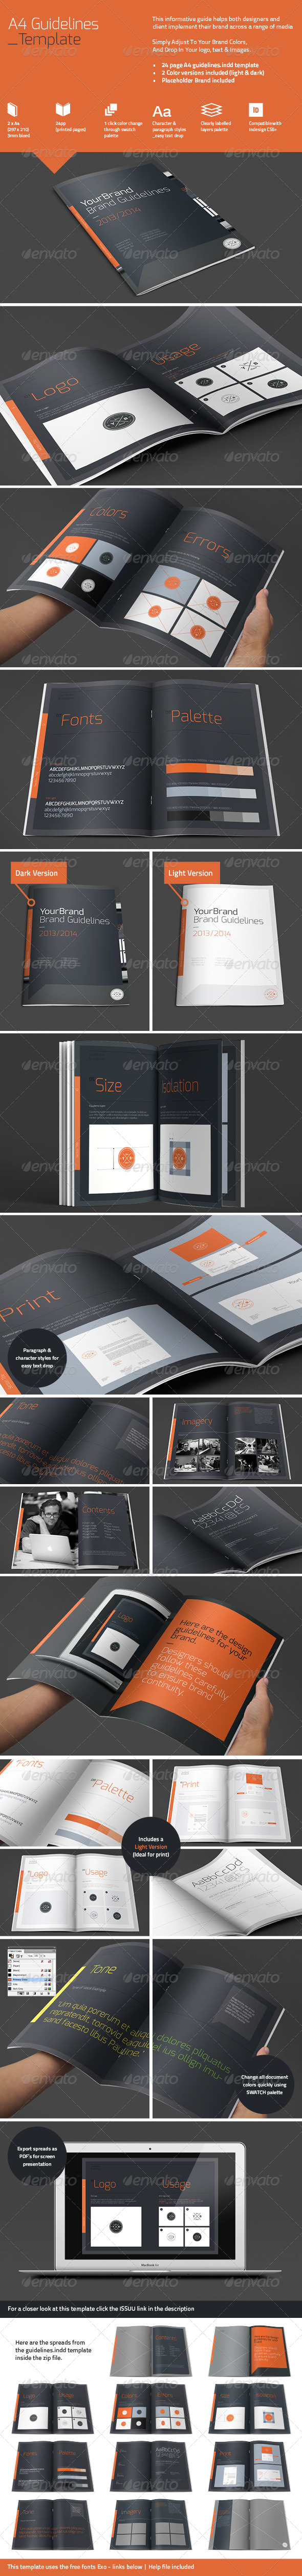 GraphicRiver A4 Brand Guidelines 4825619